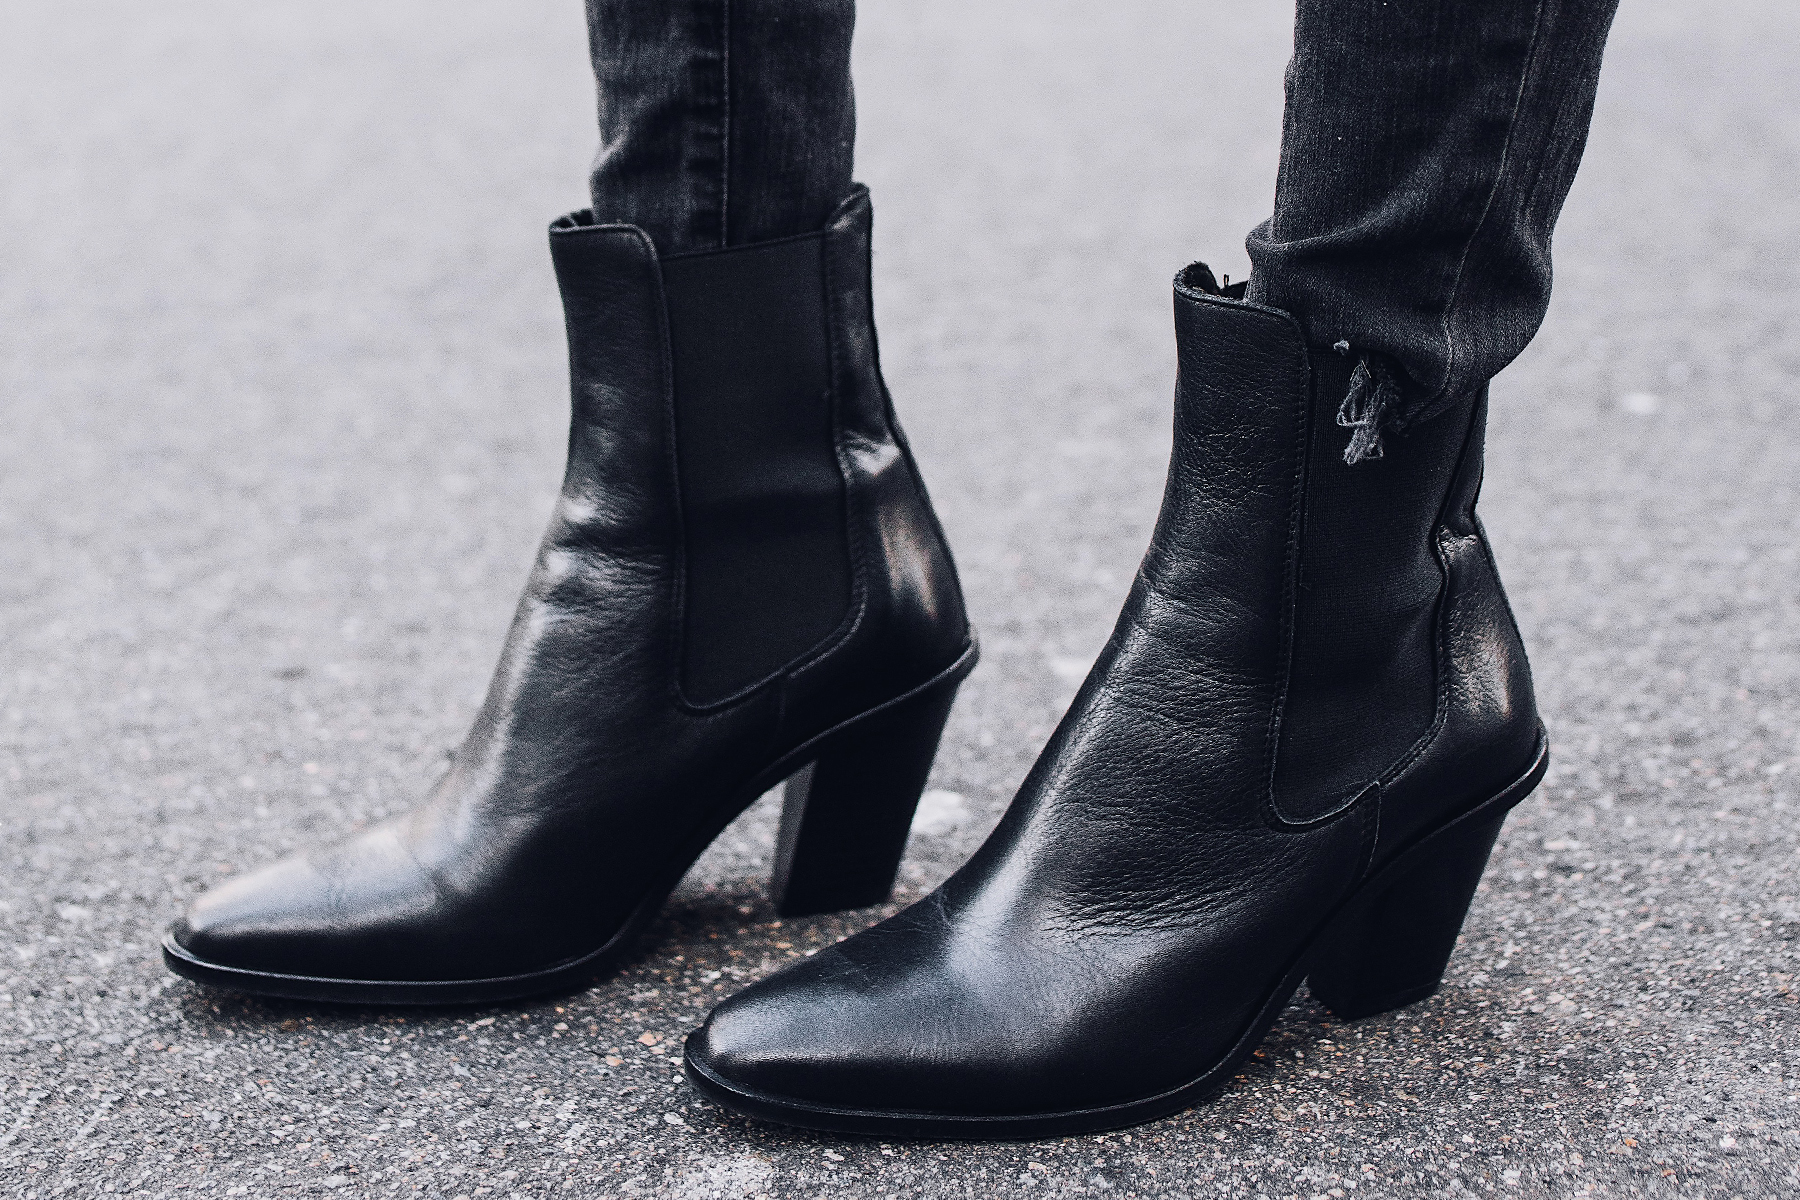 Topshop Black Leather Booties